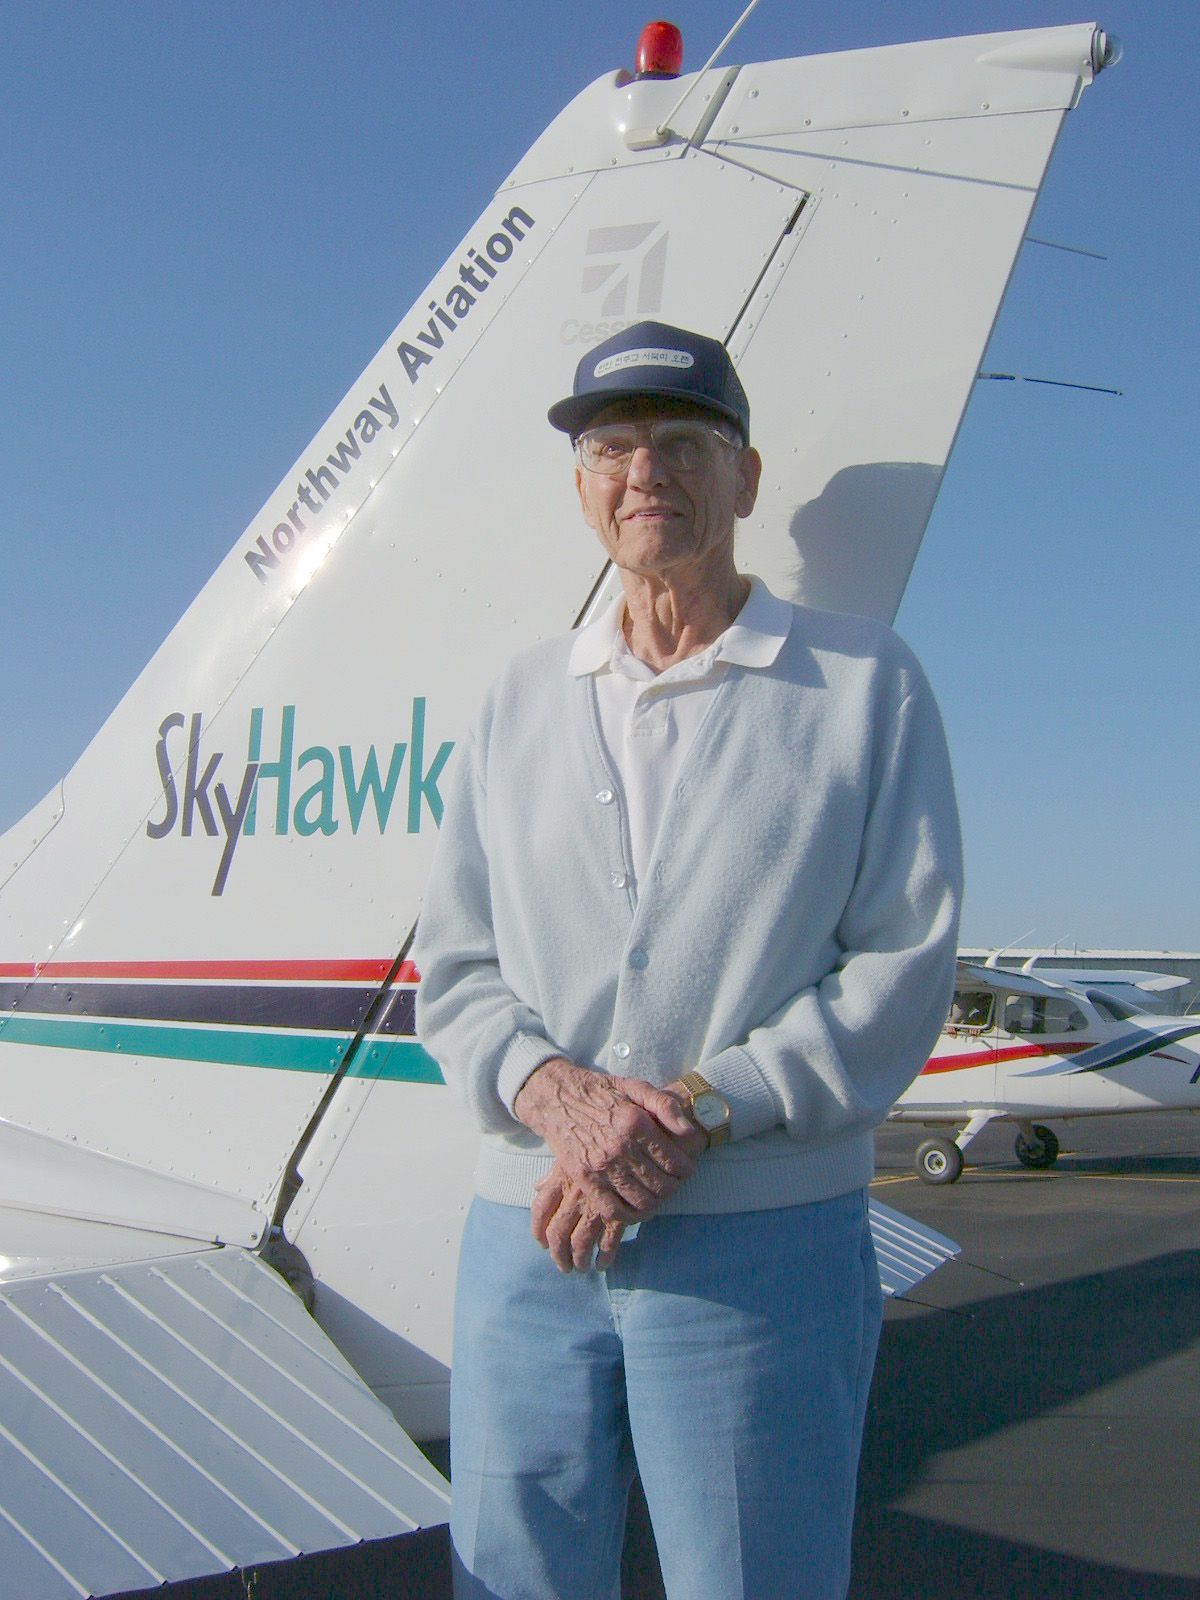 Northwest Student Pilot Makes Solo Flight at 91